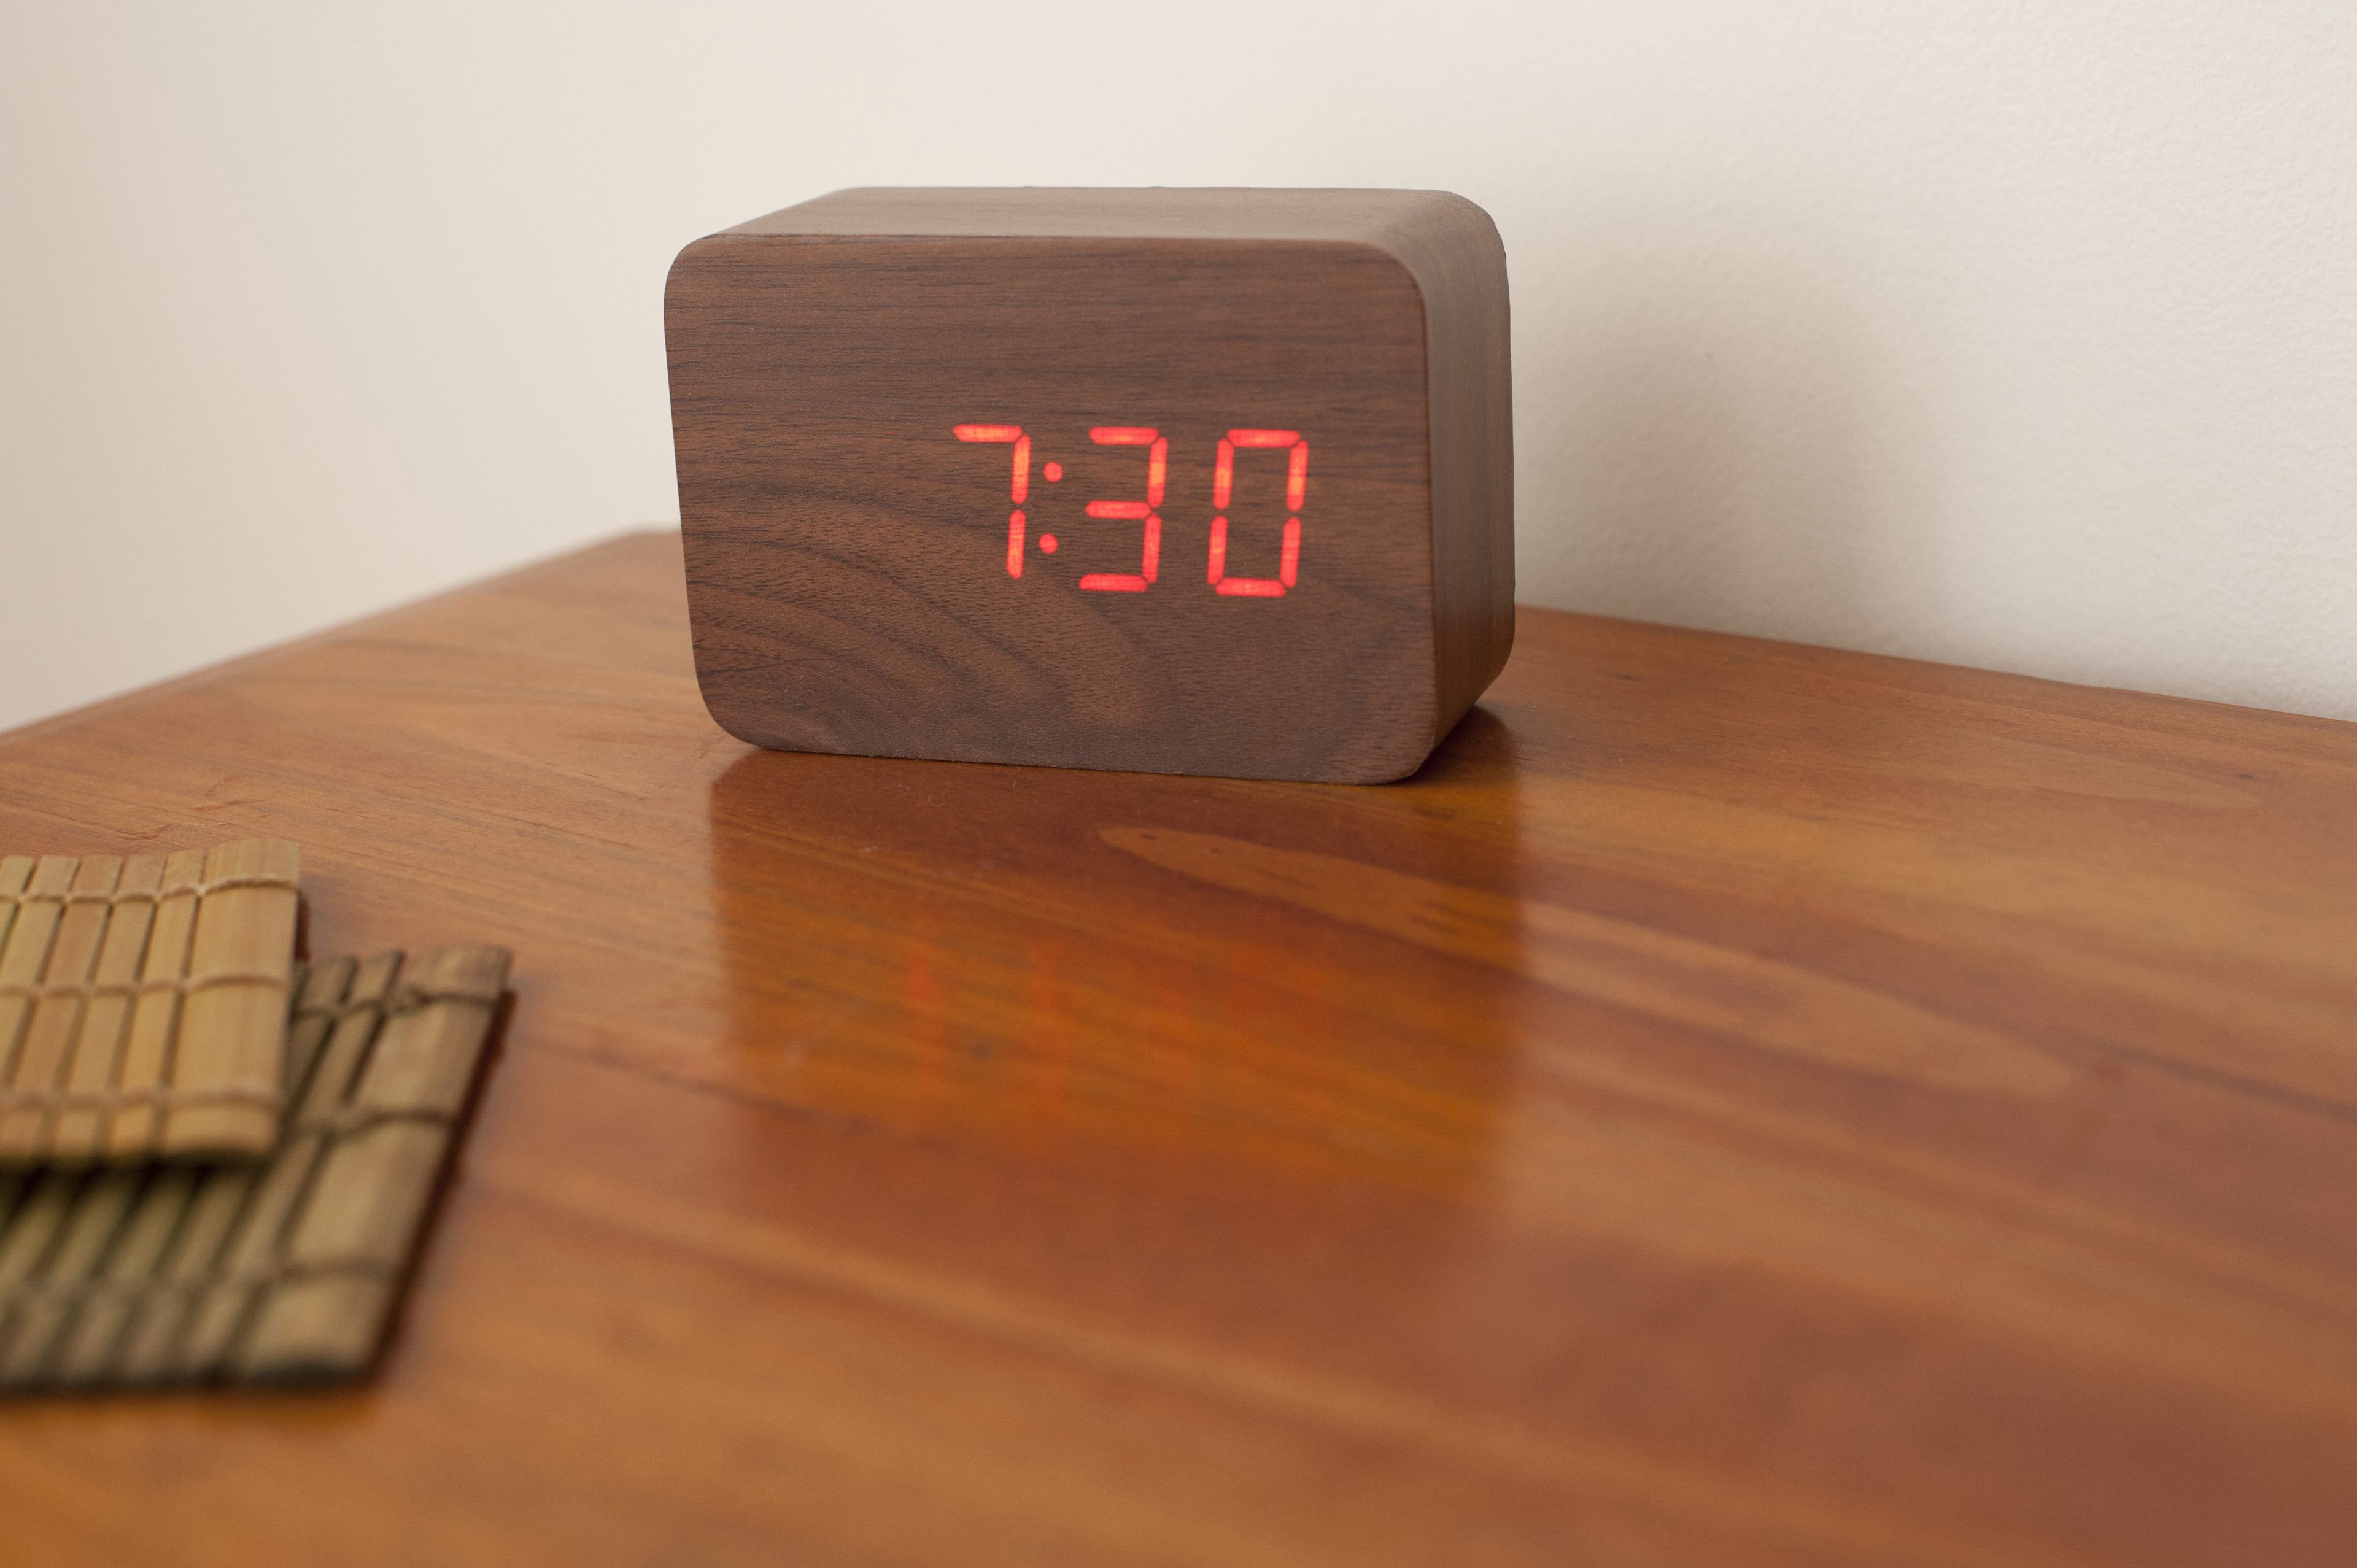 Alarm clock showing half past seven on a wooden table with copyspace